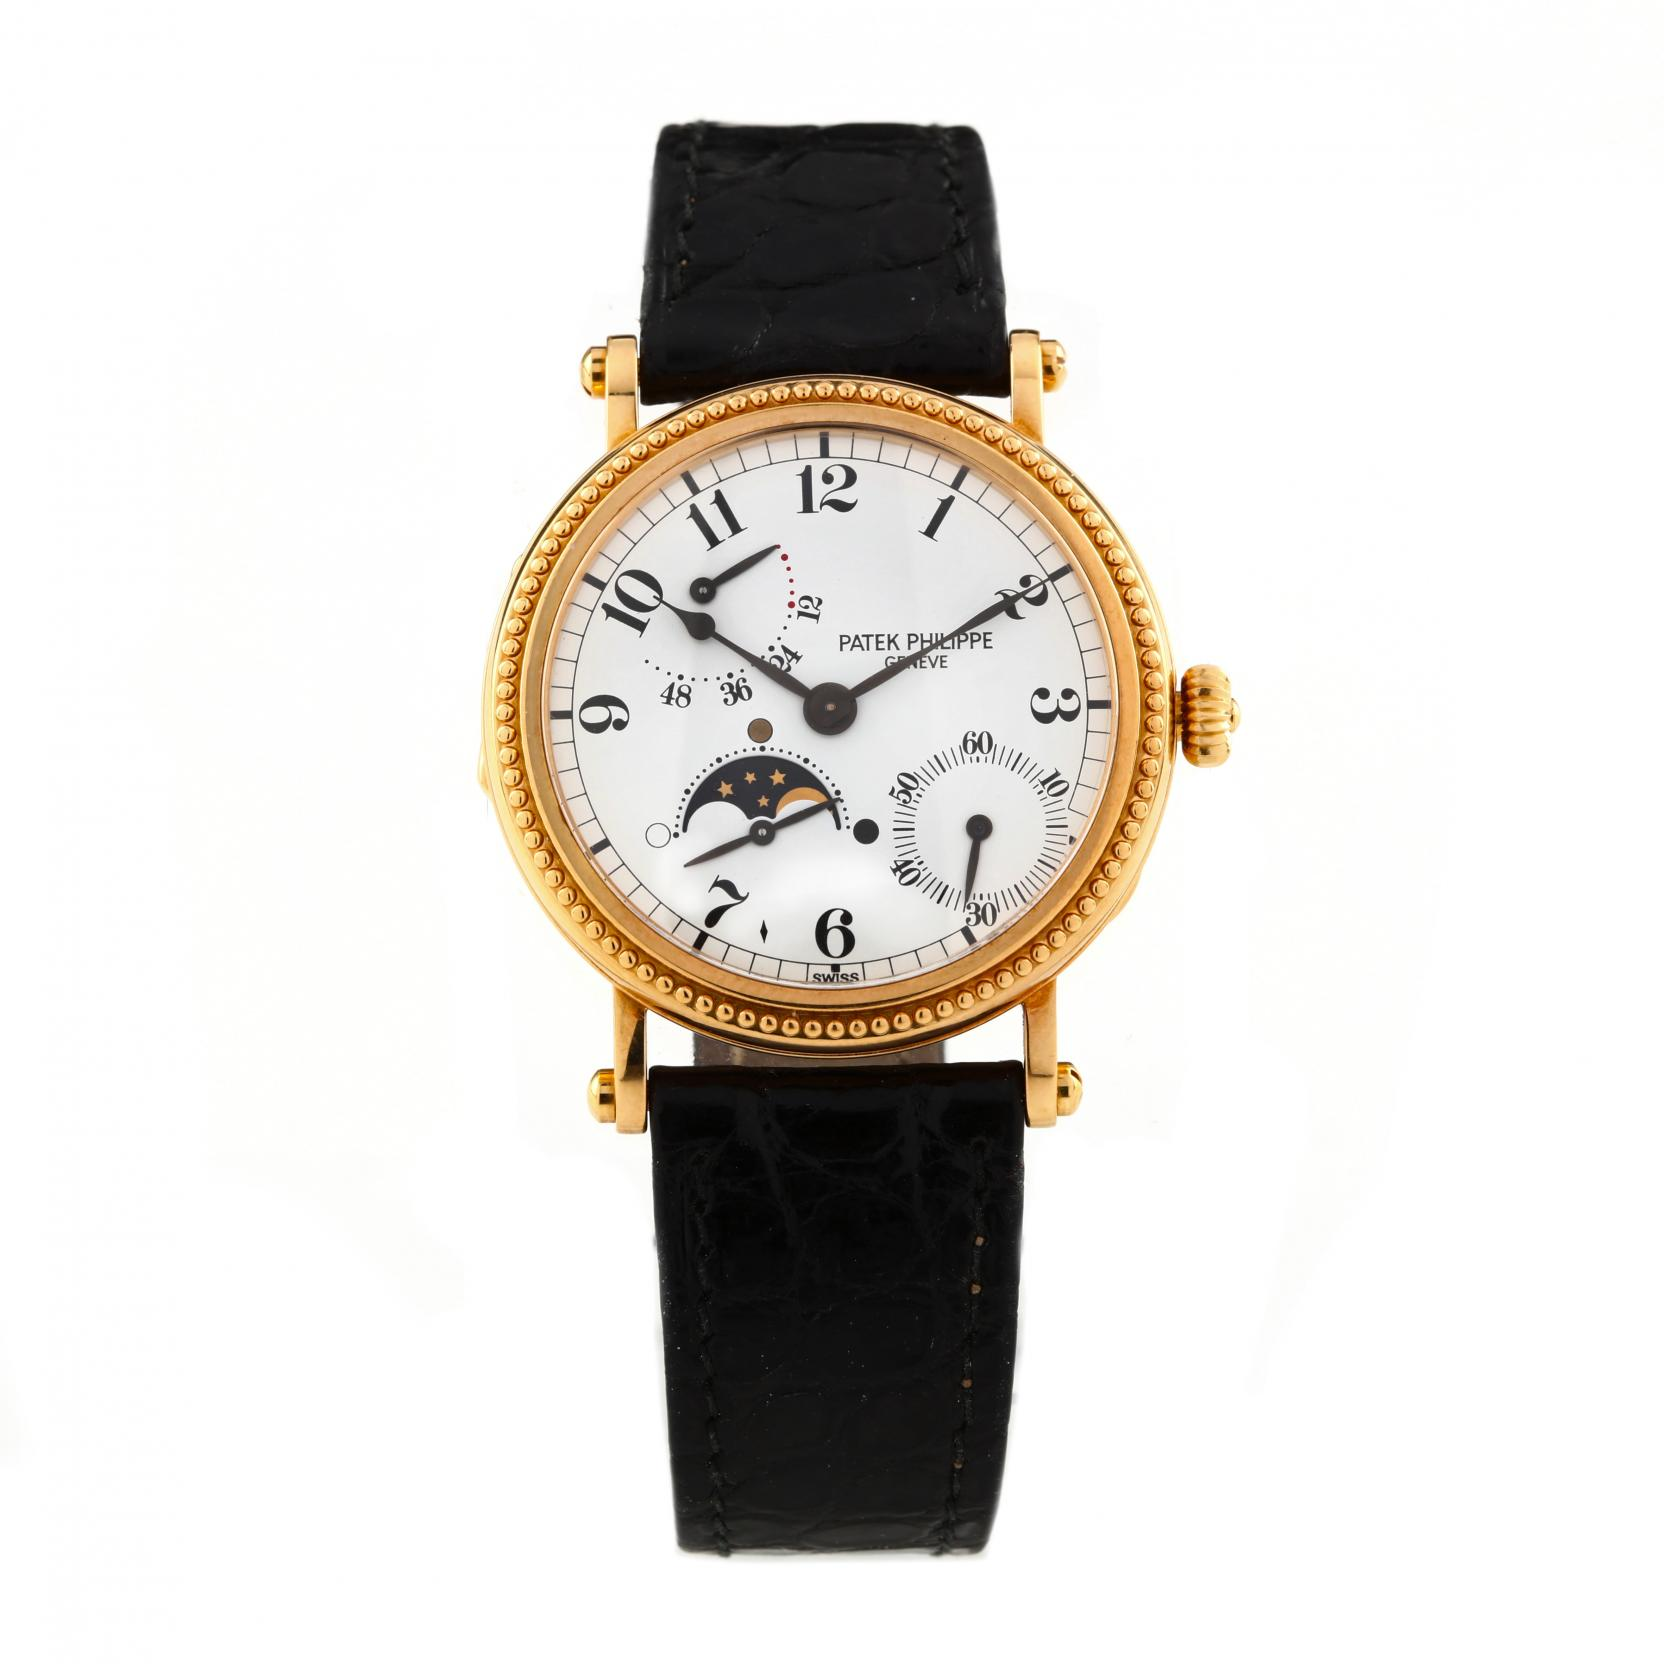 a-fine-18kt-gold-moon-phase-watch-patek-philippe